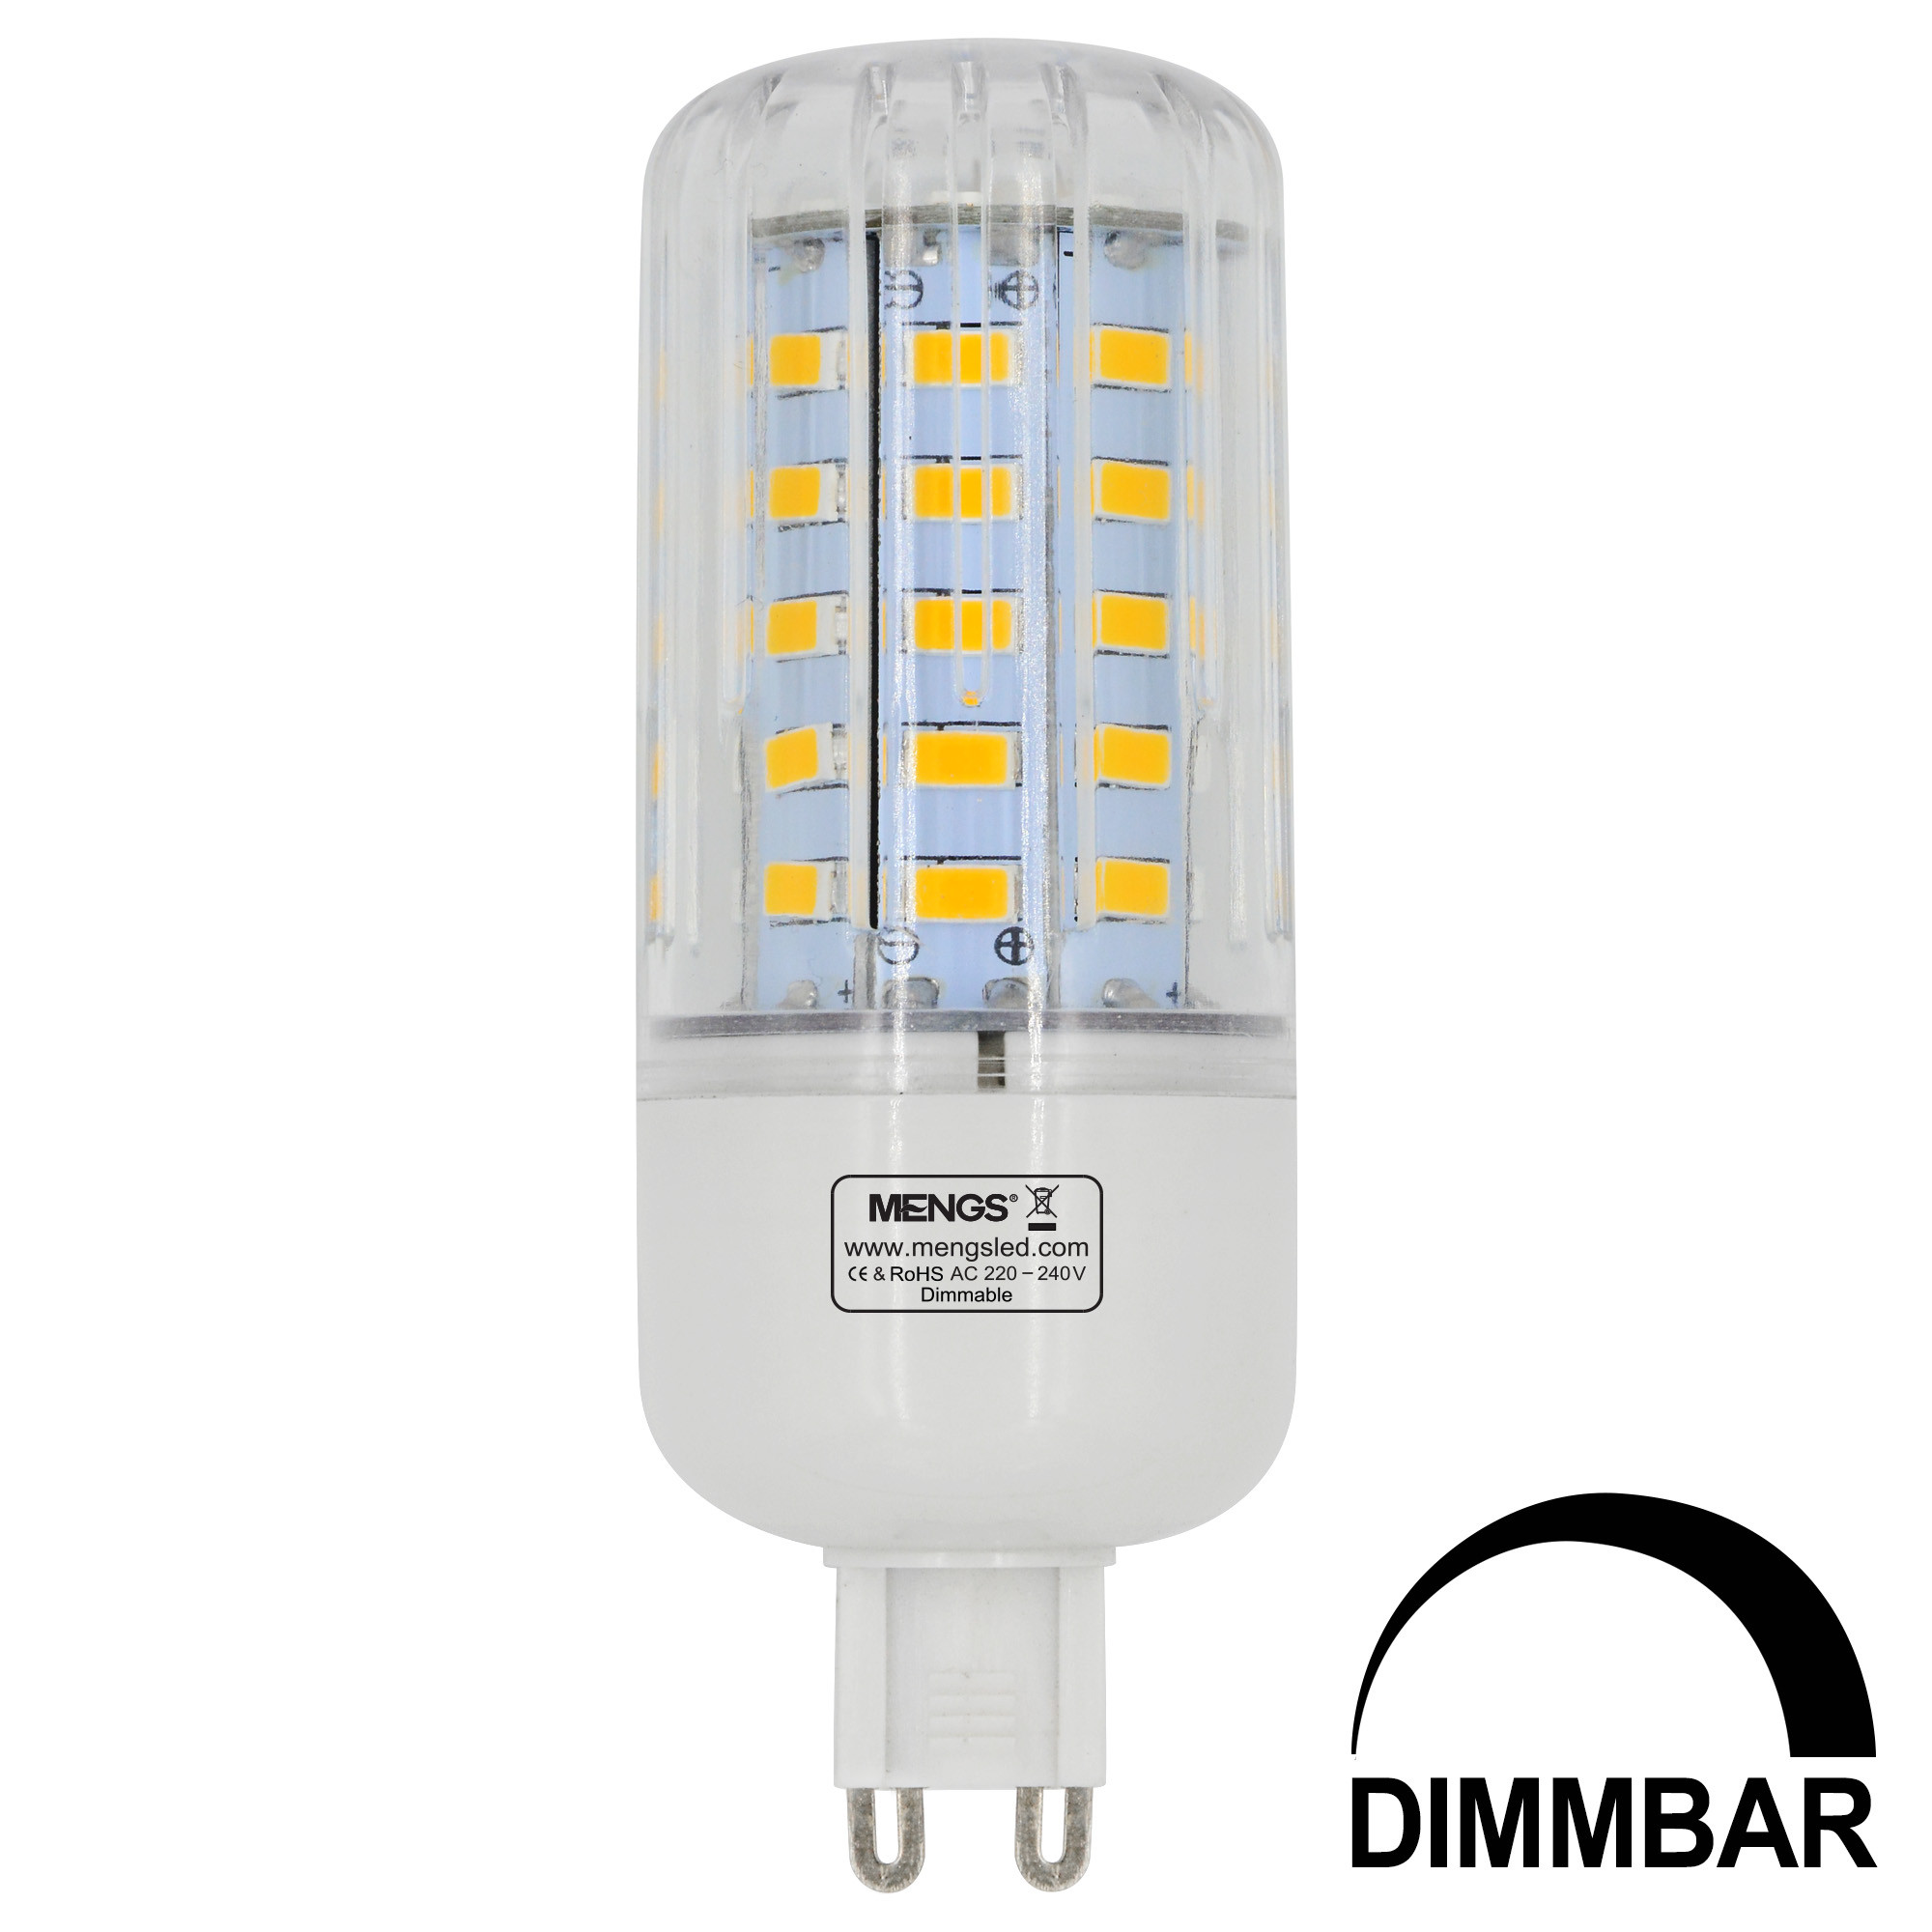 g9 7w led dimmable corn light 50x 5736 smd led bulb lamp ac 220 240v in warm white energy saving. Black Bedroom Furniture Sets. Home Design Ideas